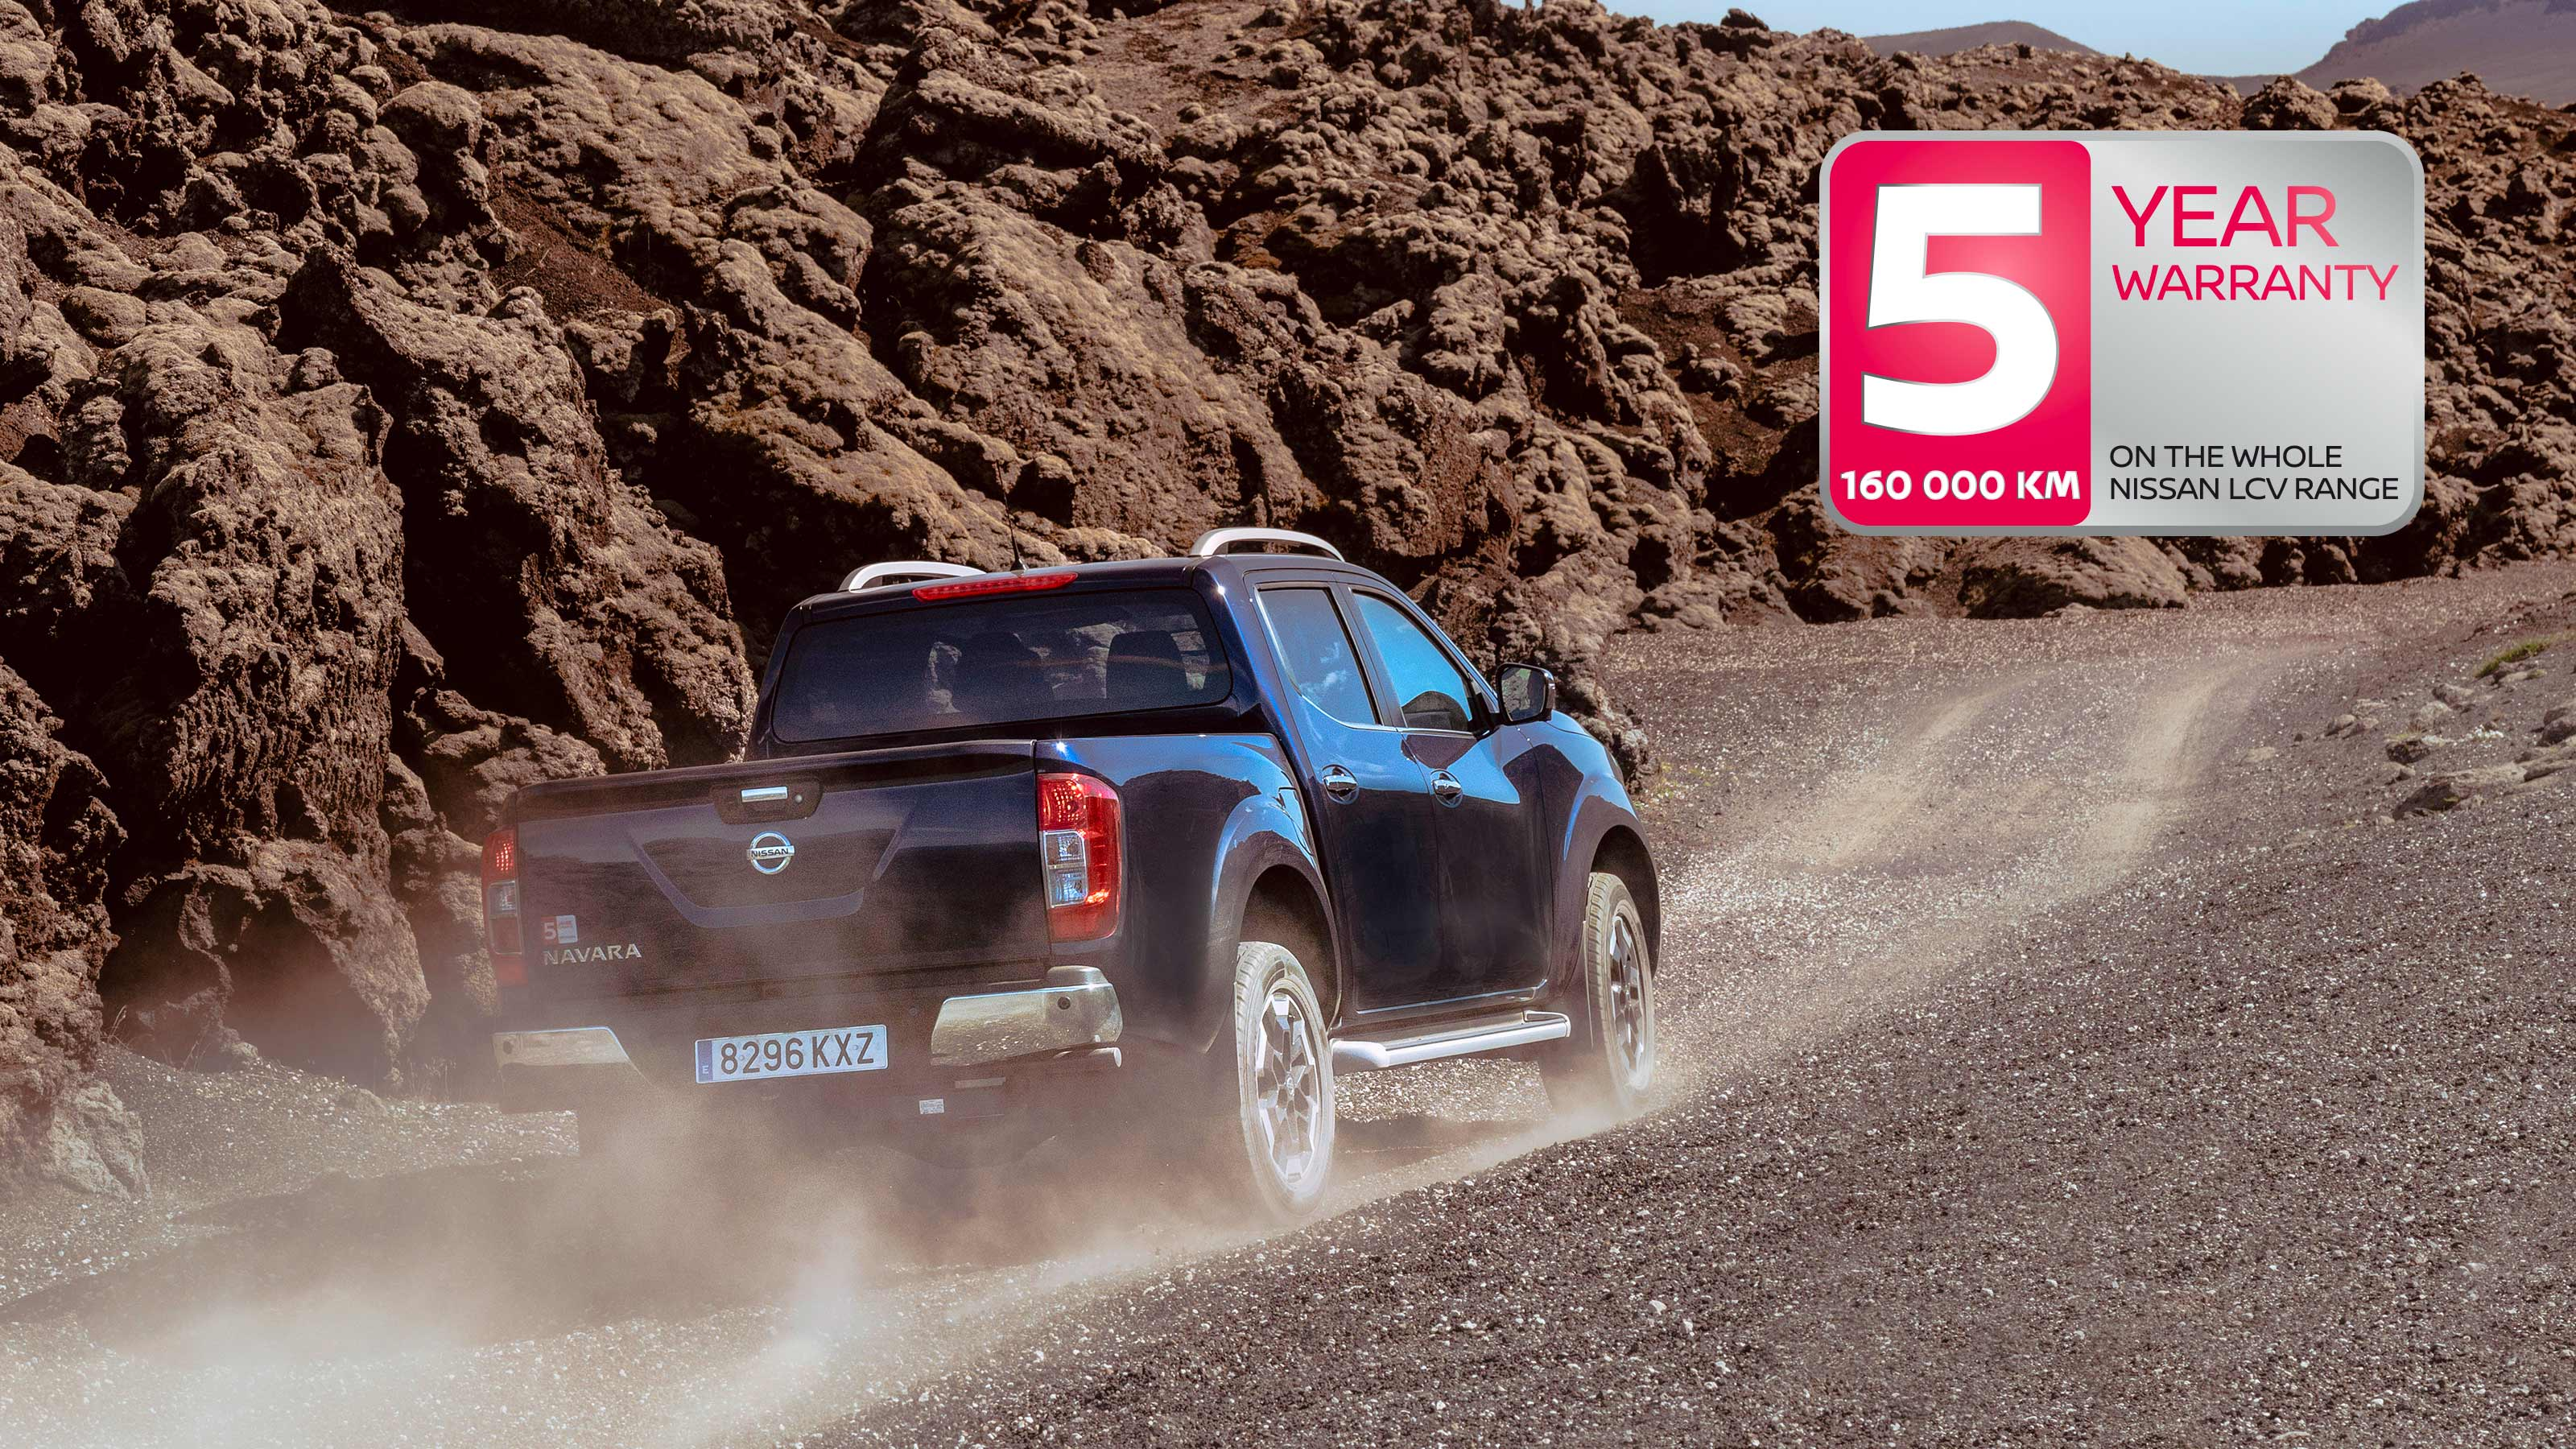 NISSAN NAVARA in movimento nel deserto